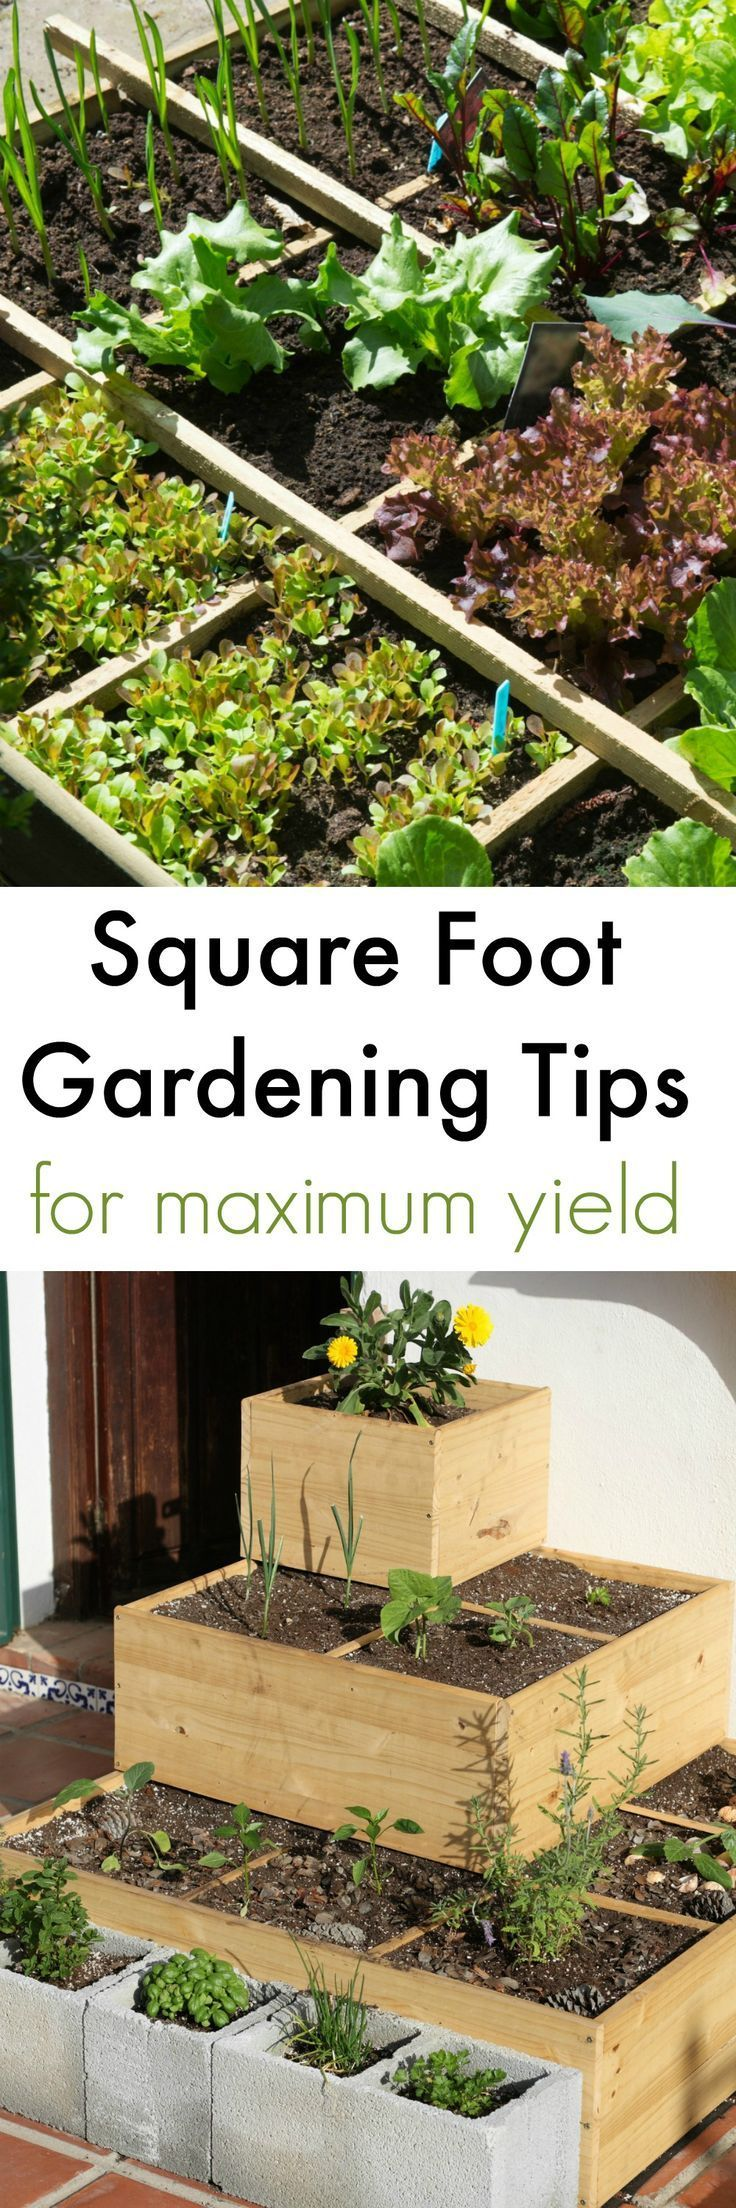 Square Foot Gardening Method for Maximum Yield